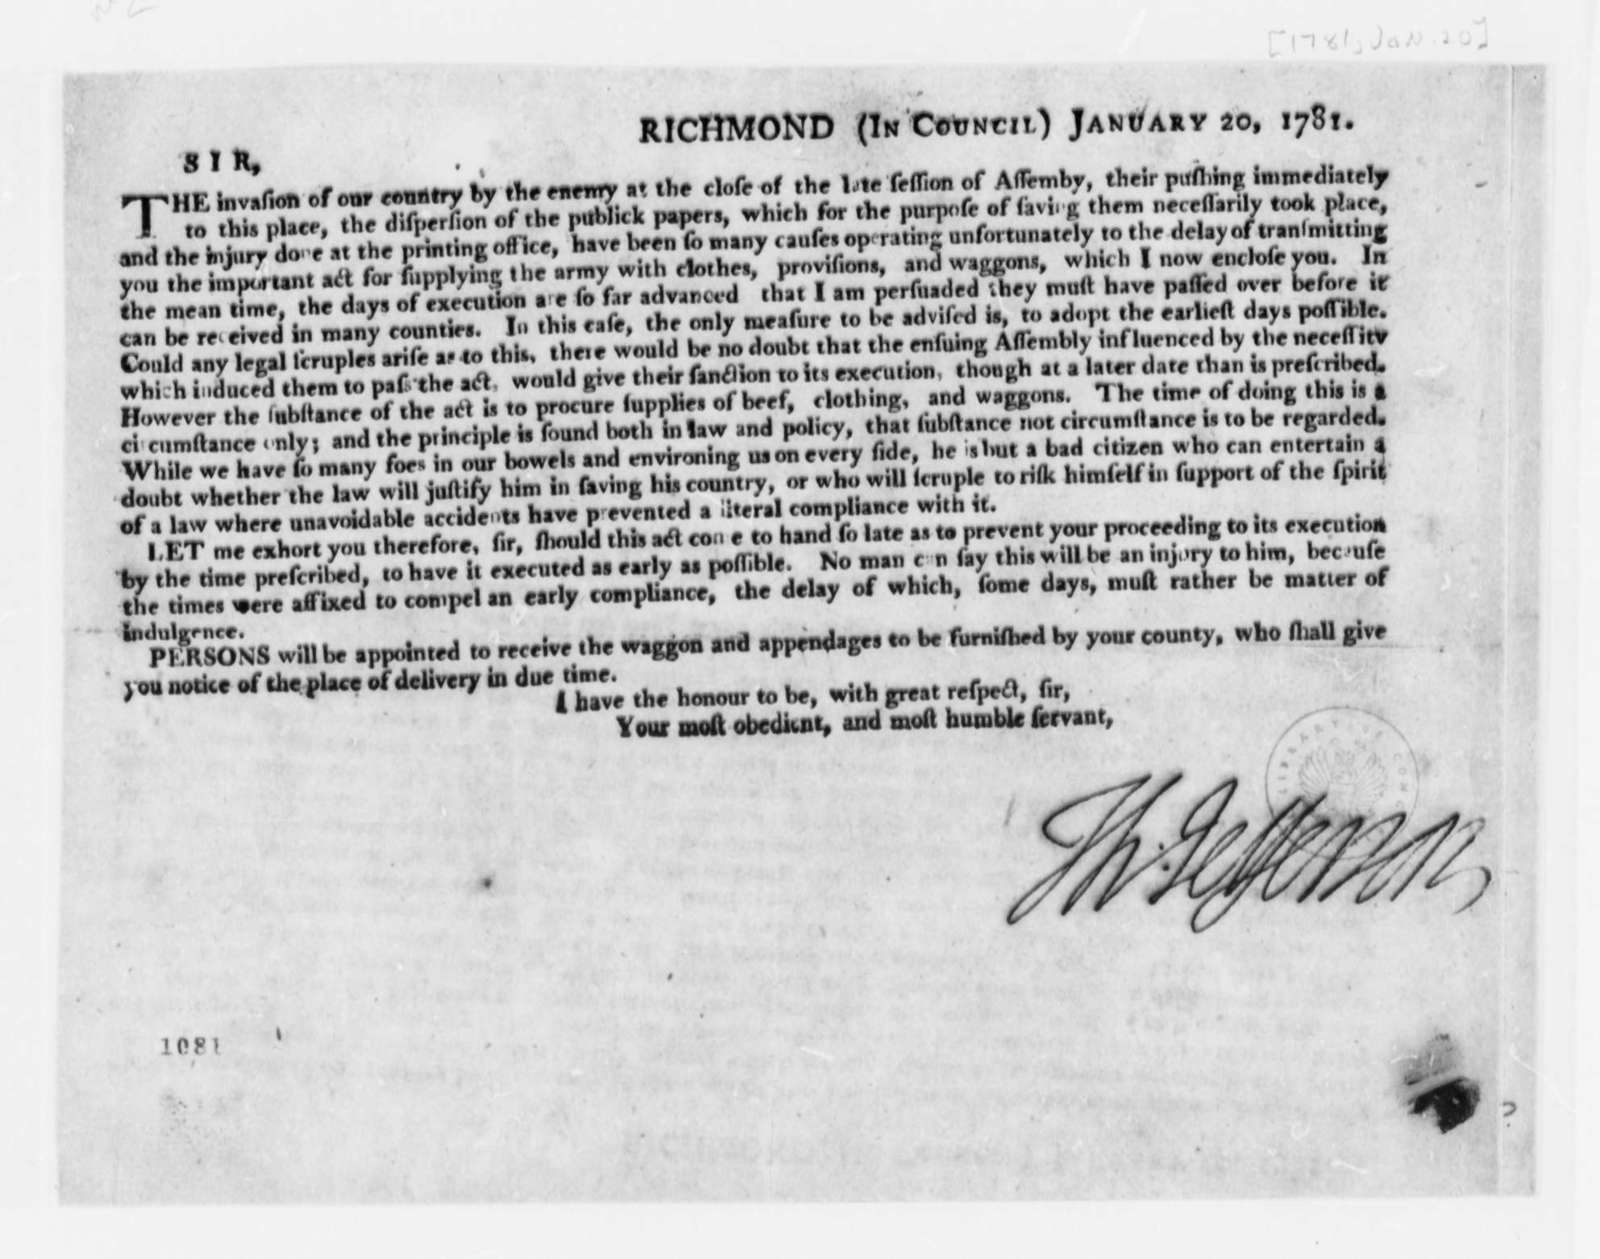 Thomas Jefferson to the First Magistrate of Each Virginia County, January 20, 1781, Printed Proclamation on Supplying Continental Army with Provisions